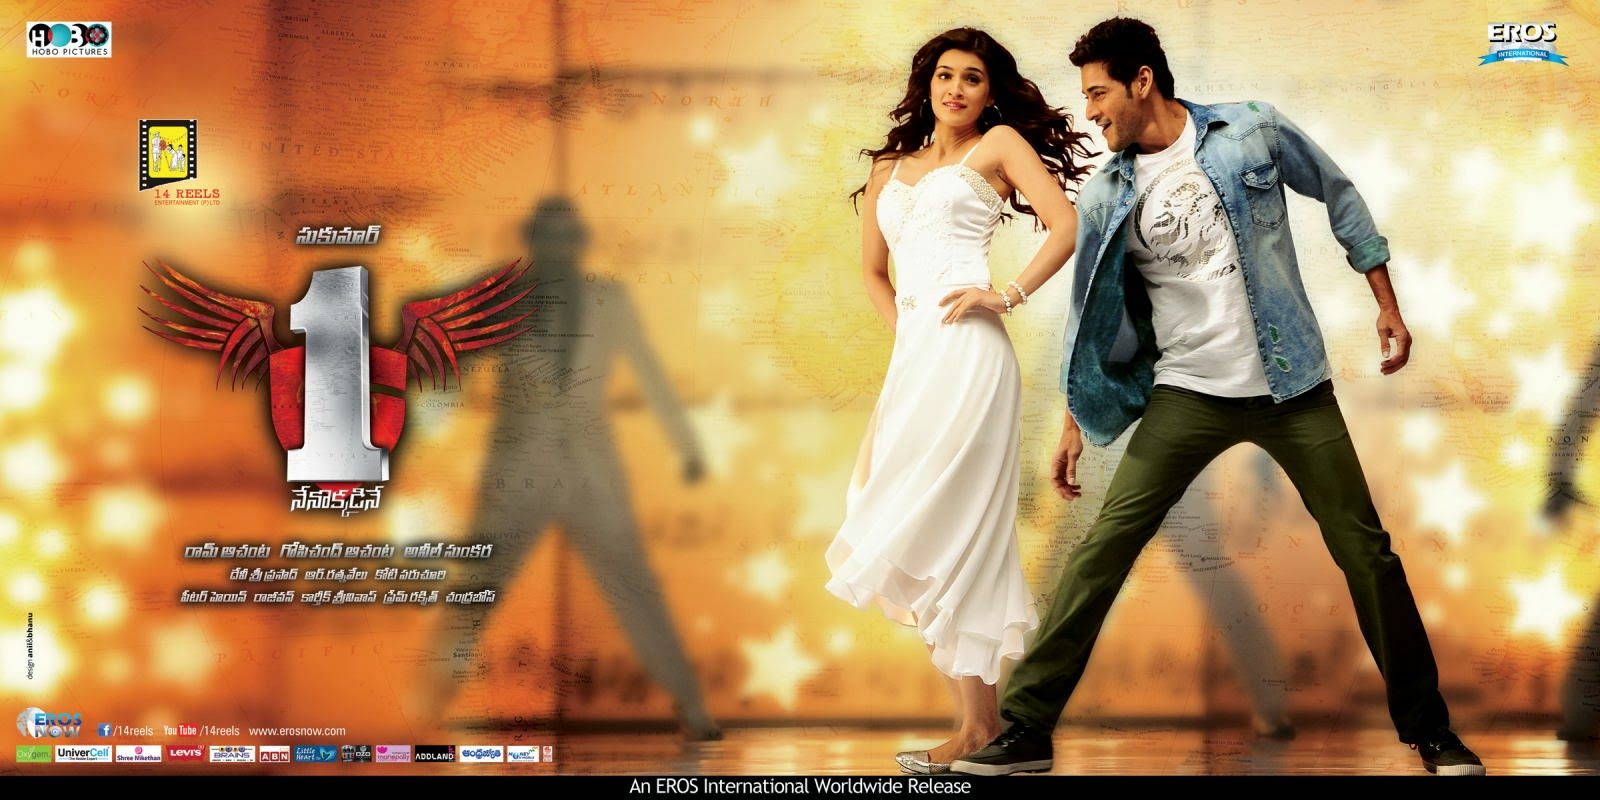 1 Nenokkadine Movie Latest Posters - Atozsongsnew-Latest Film News,Images,Posters,Songs ...